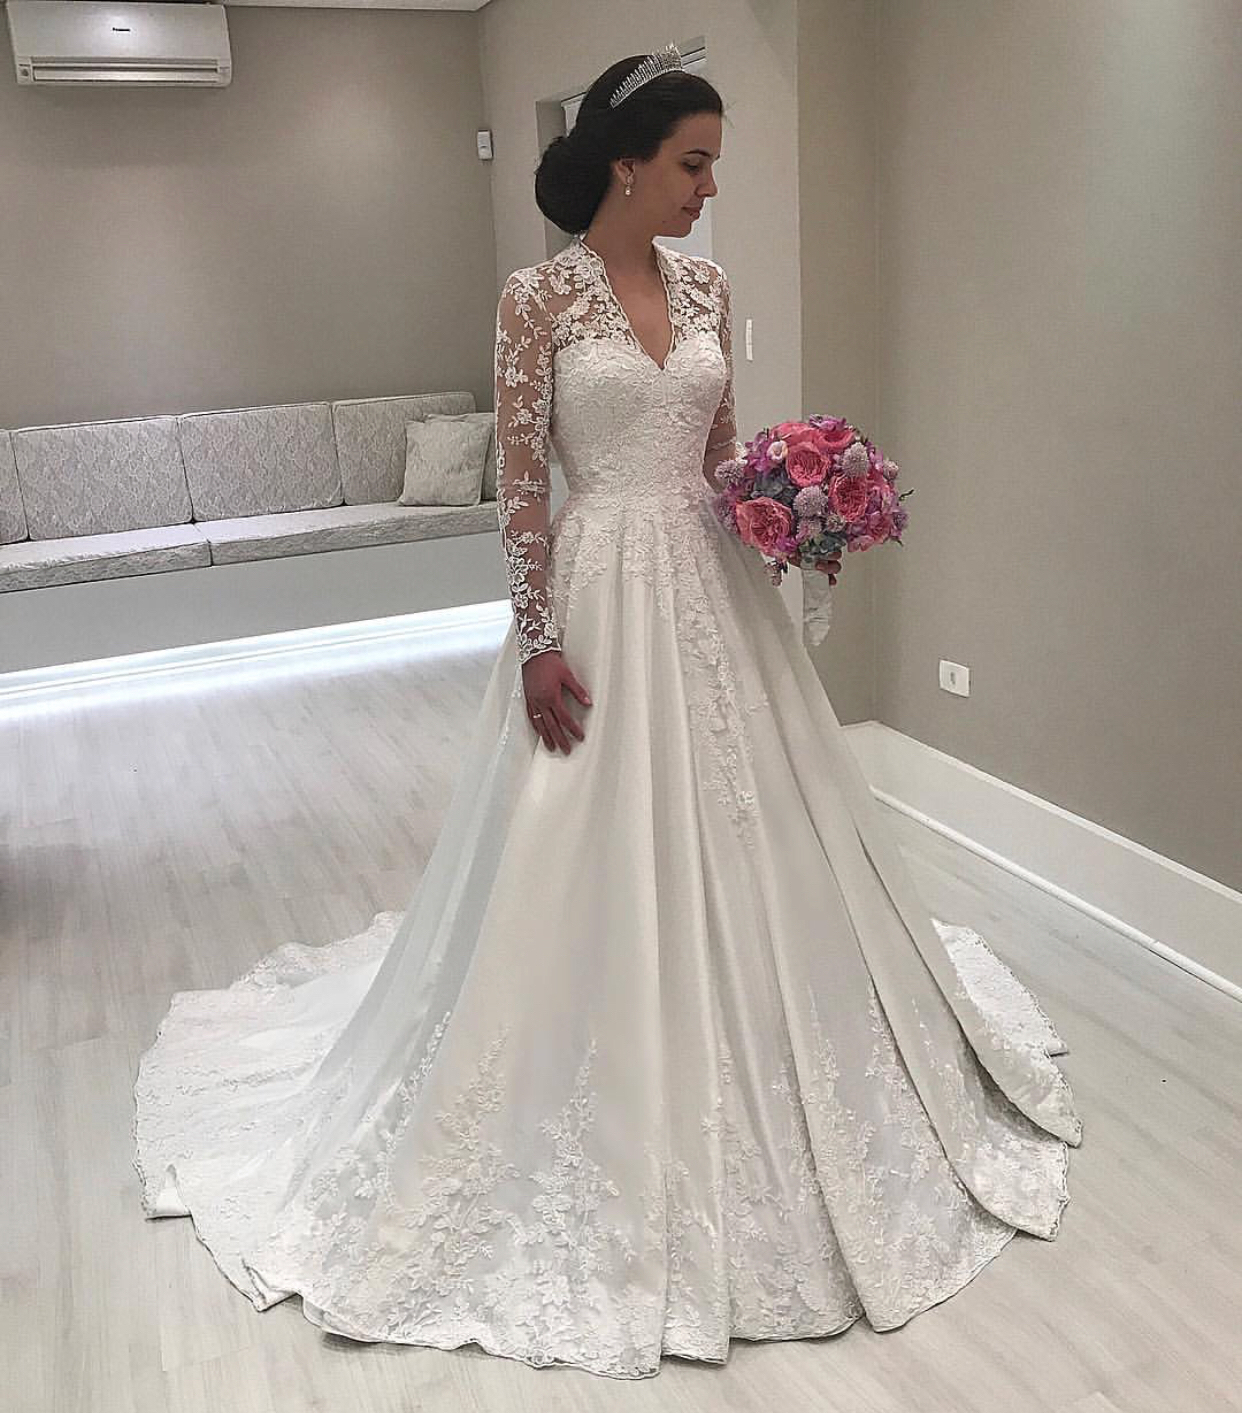 Lace Vintage Wedding Dress.Long Sleeve Wedding Dress Vintage Wedding Dress Lace Applique Wedding Dress Elegant Wedding Dress Gorgeous Wedding Dress Vestido De Noiva A Line